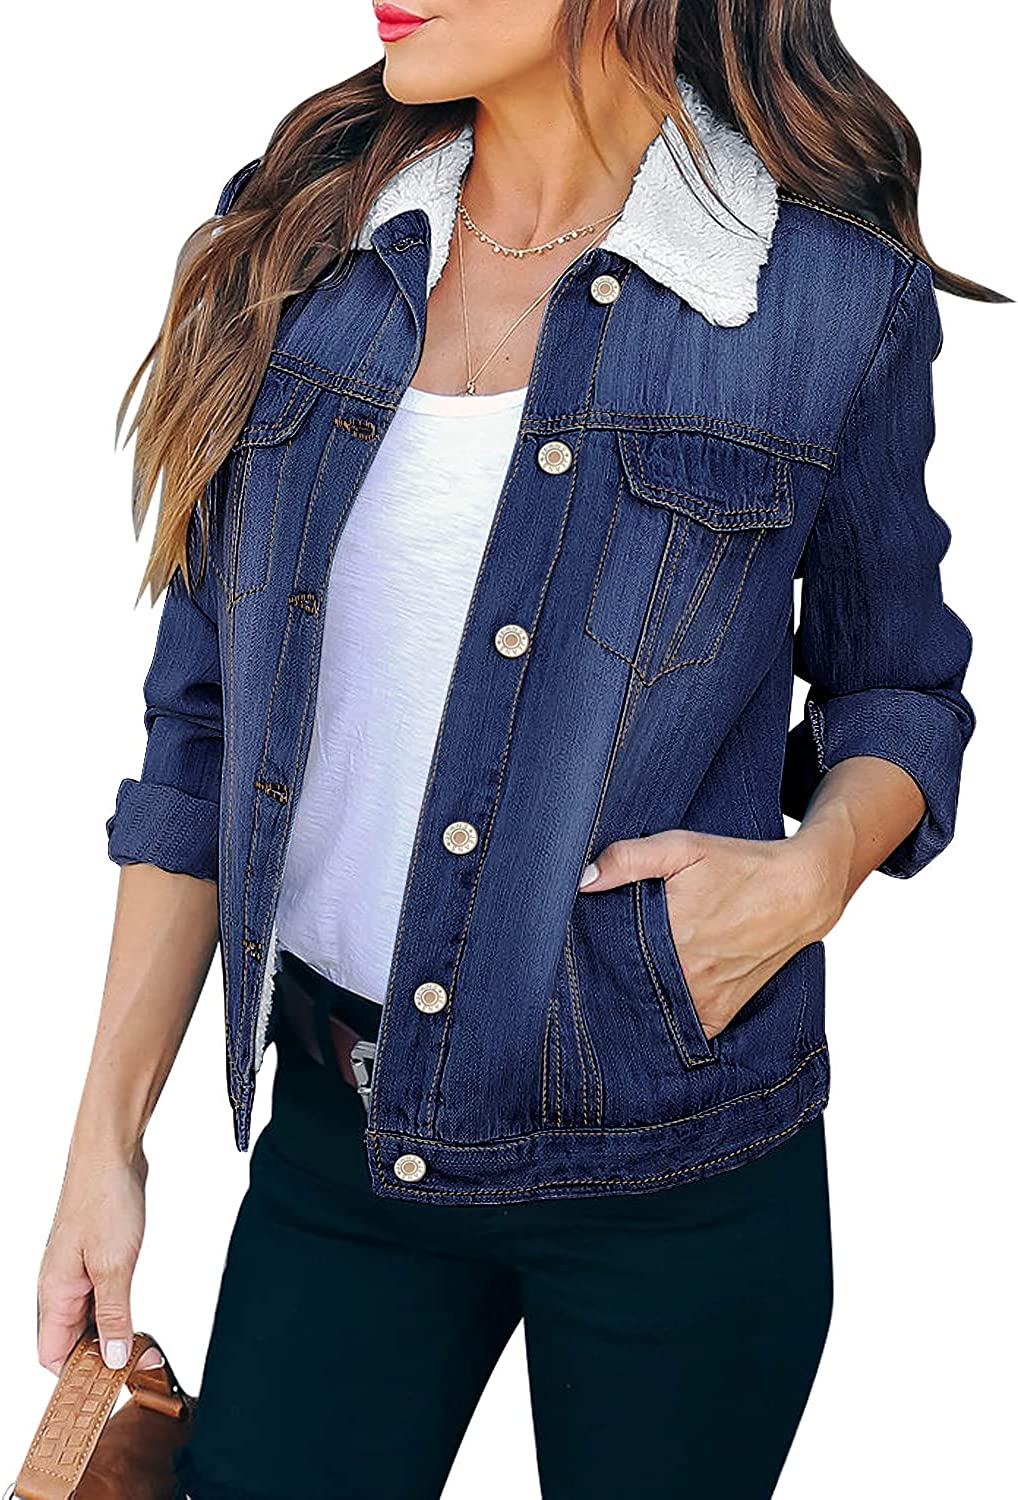 LookbookStore Women's Casual Button Down Ripped Fleece Basic Denim Jacket Coat with Pockets